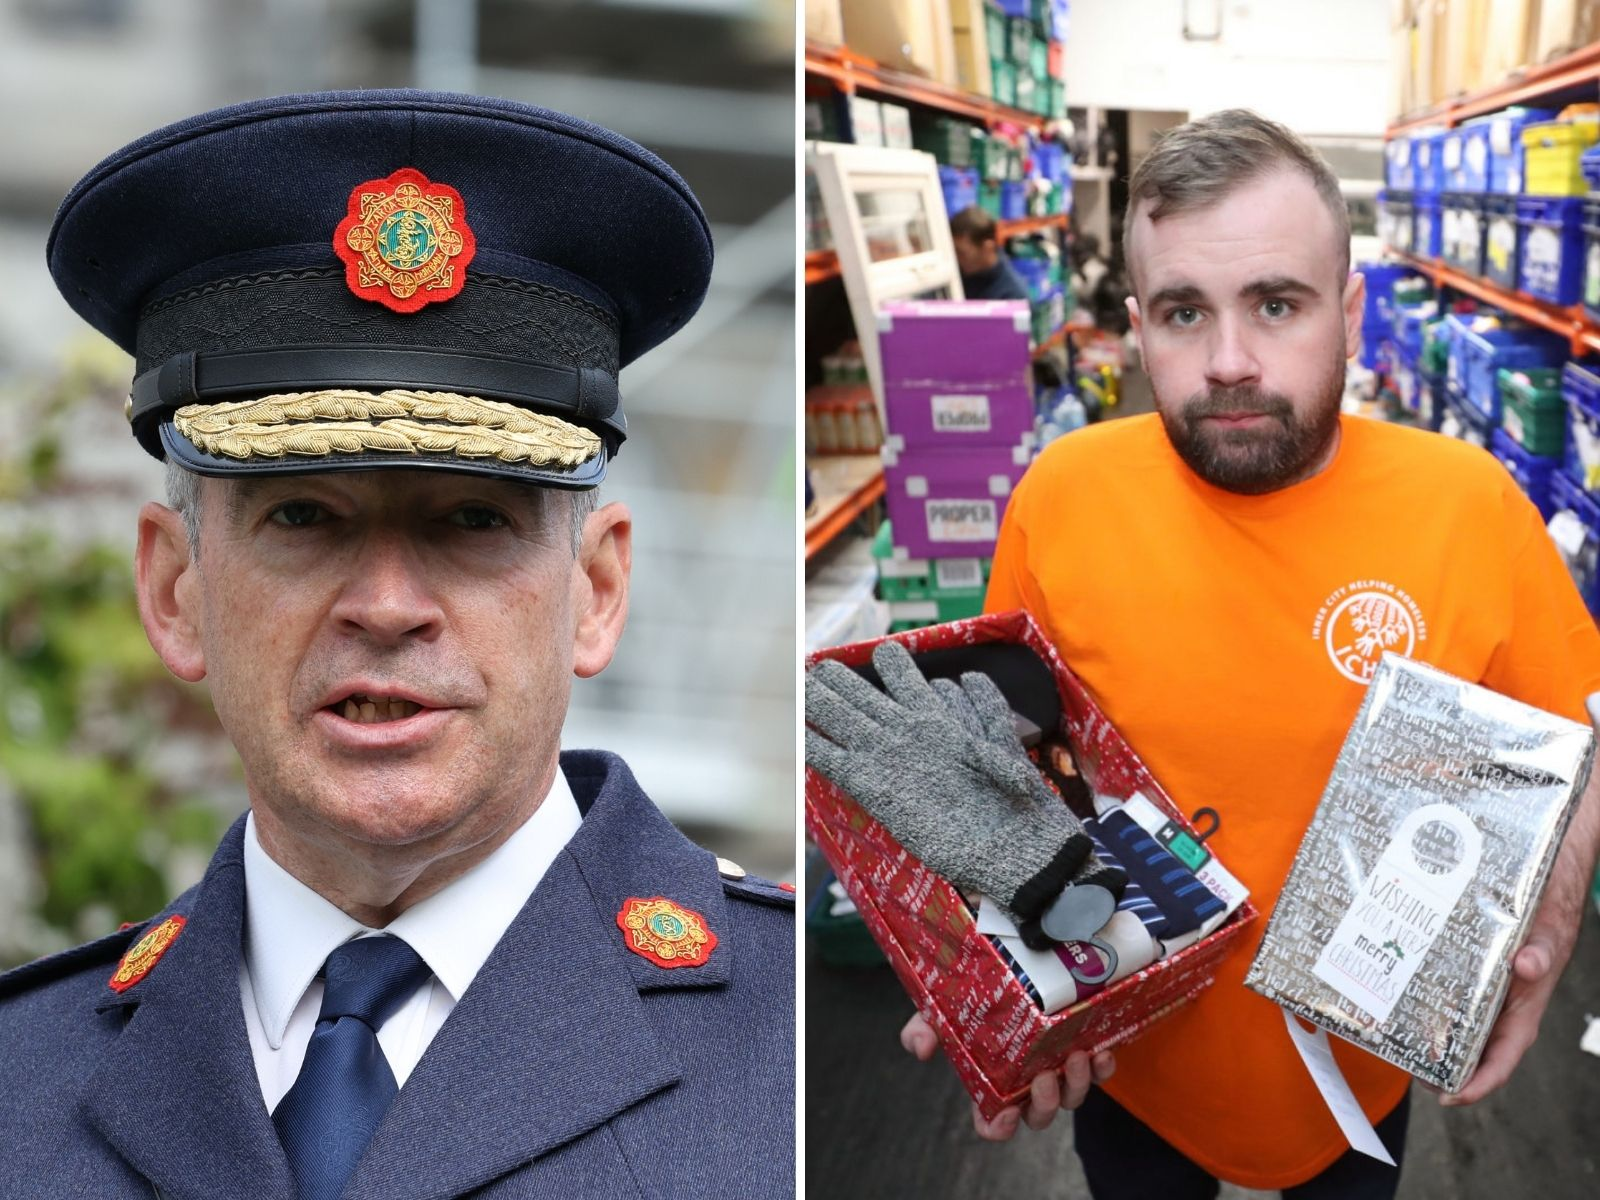 Composite image shows Garda Commissioner Drew Harris speaking at a ceremony to award deceased, retired and serving members of An Garda Síochána with Scott Medals for Bravery at Dublin Castle, and Anthony Flynn at an Inner City Helping Homeless warehouse in Dublin.